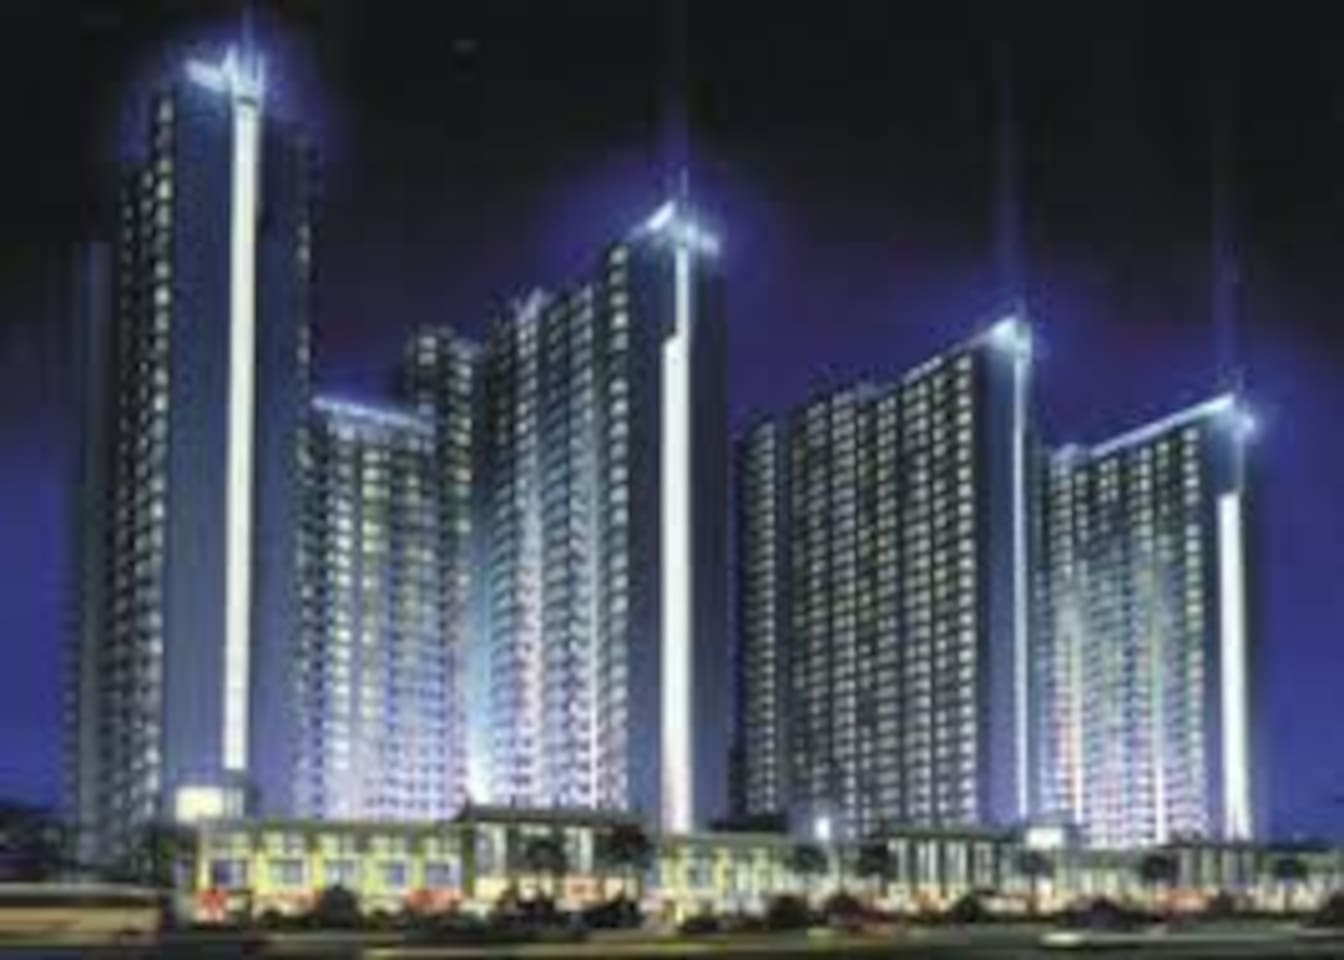 The Sudirman Park Apartments with three towers.